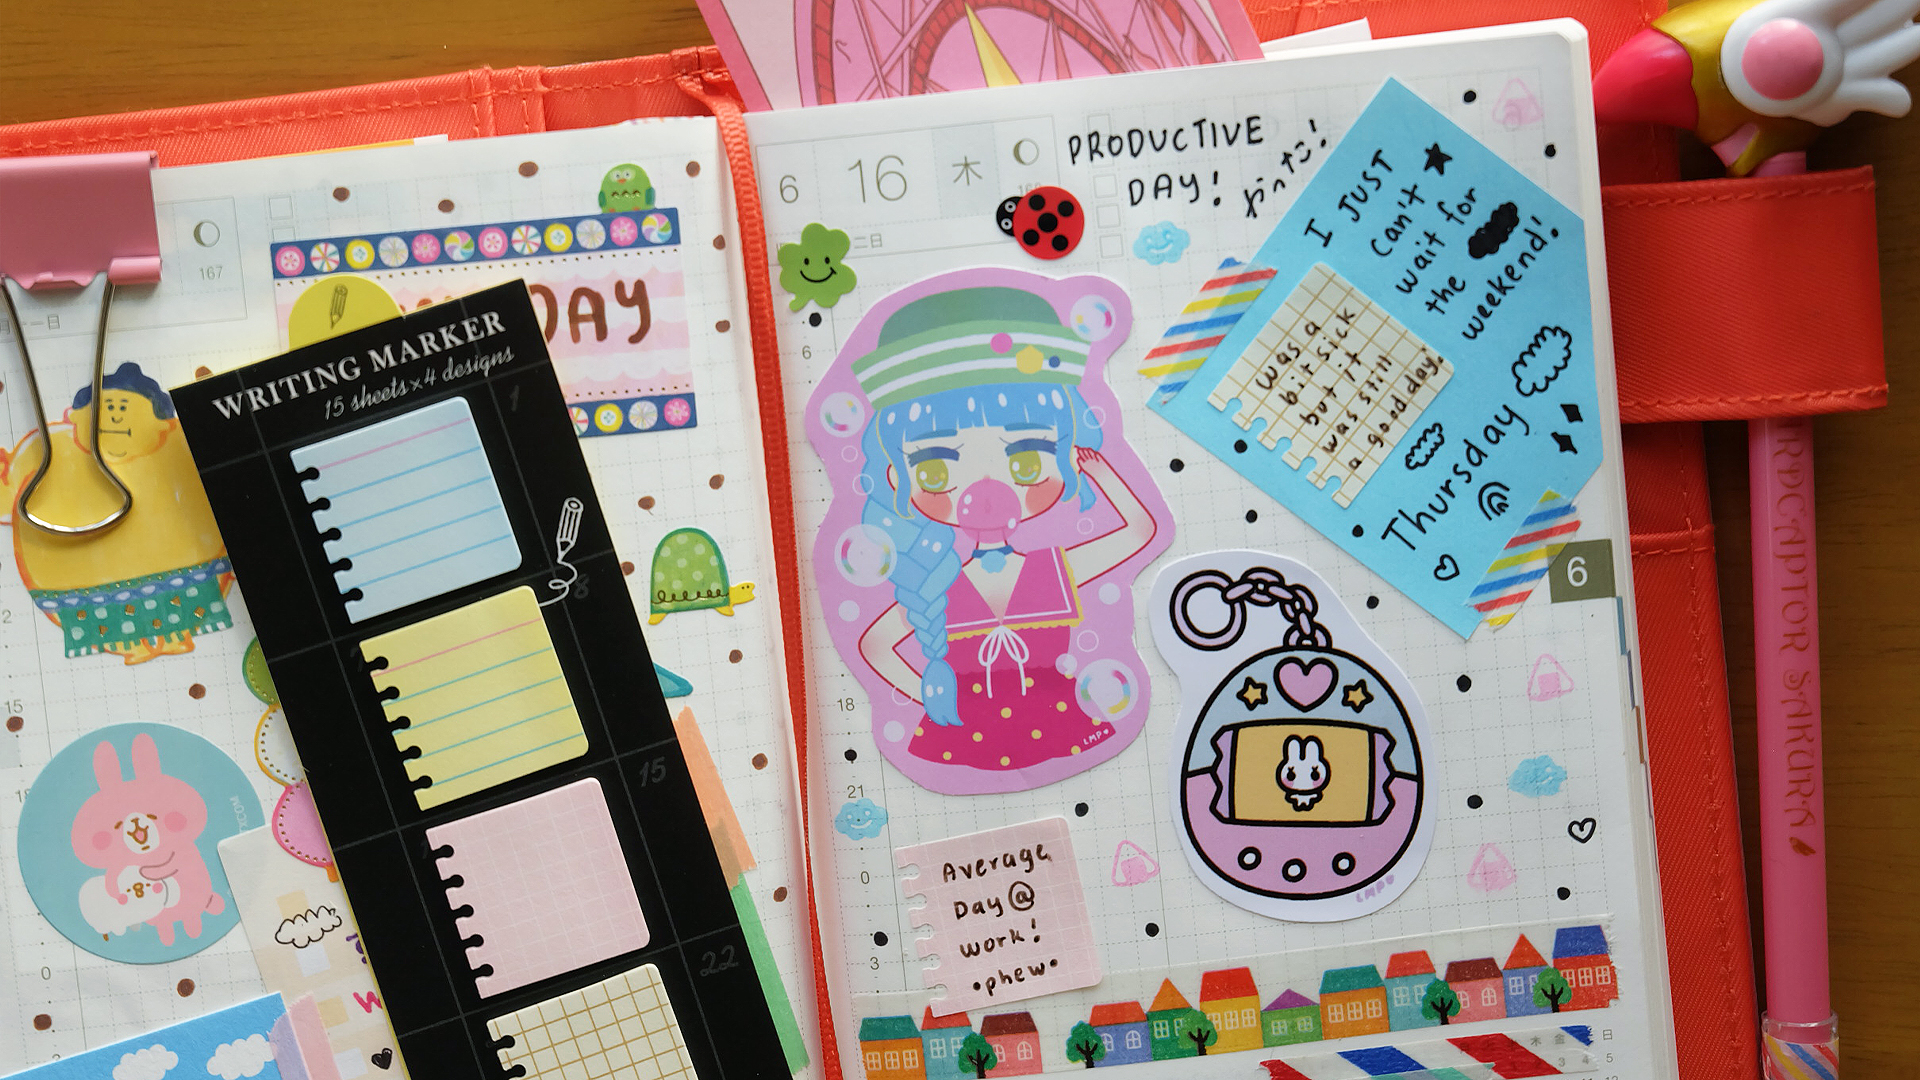 hobonichi june 16